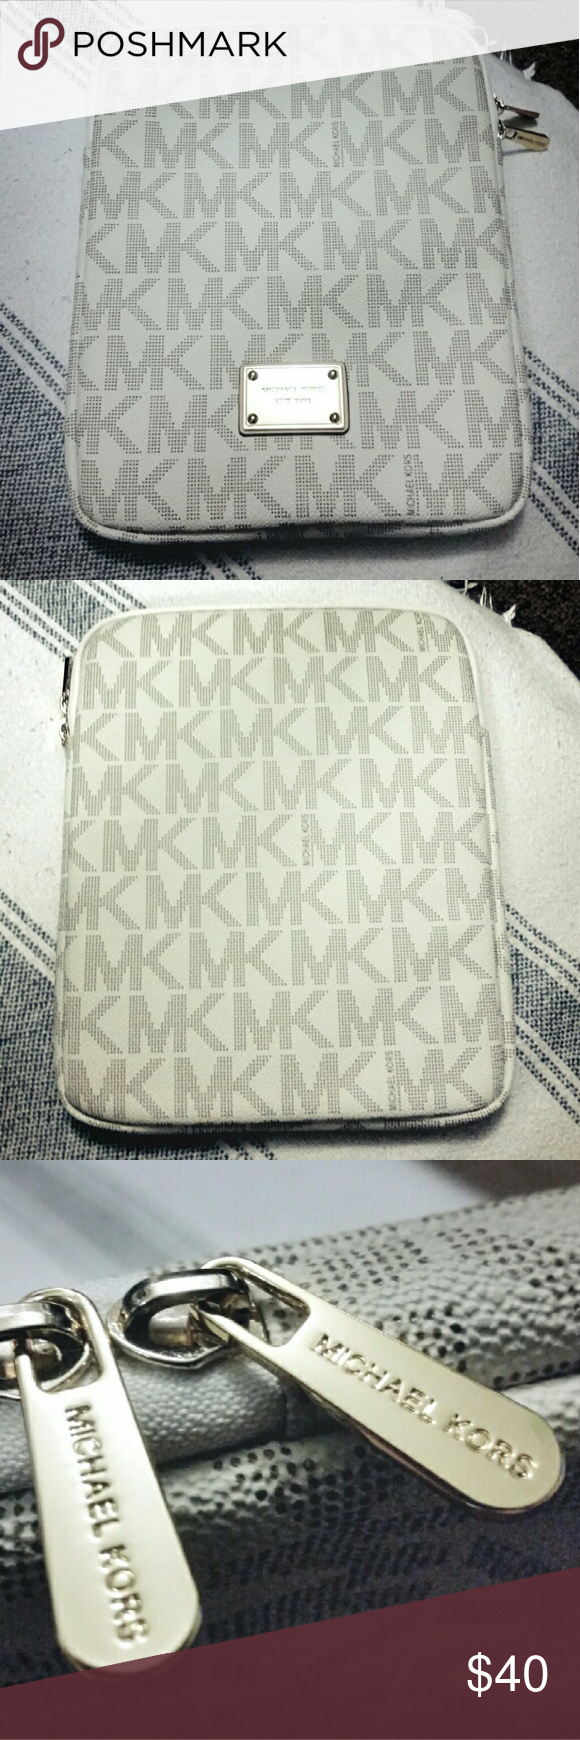 """MK signature tablet cover case NWOT - 8"""" x 10"""" - has soft material inside to prevent scratches, gold hardware. Michael Kors Accessories Tablet Cases"""